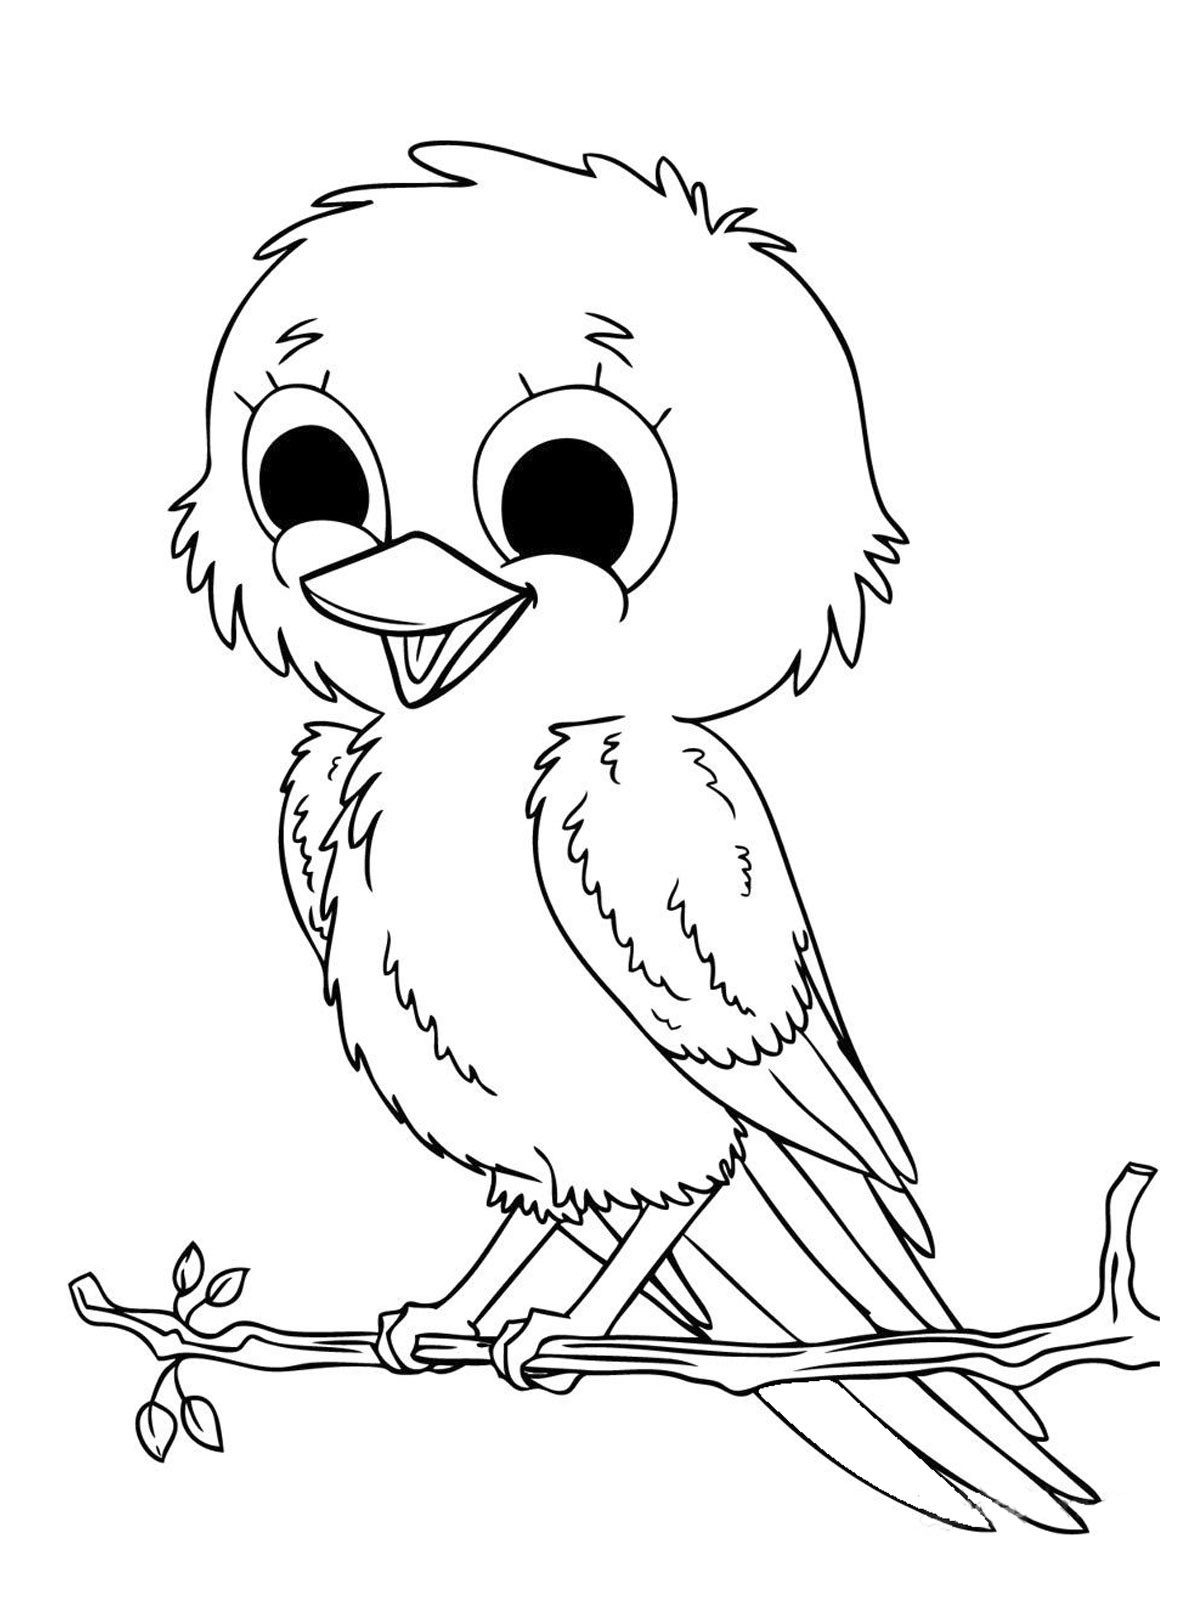 Luxury Free Coloring Pages Of Baby Animals | Www.pantry-Magic - Free Printable Pictures Of Baby Animals